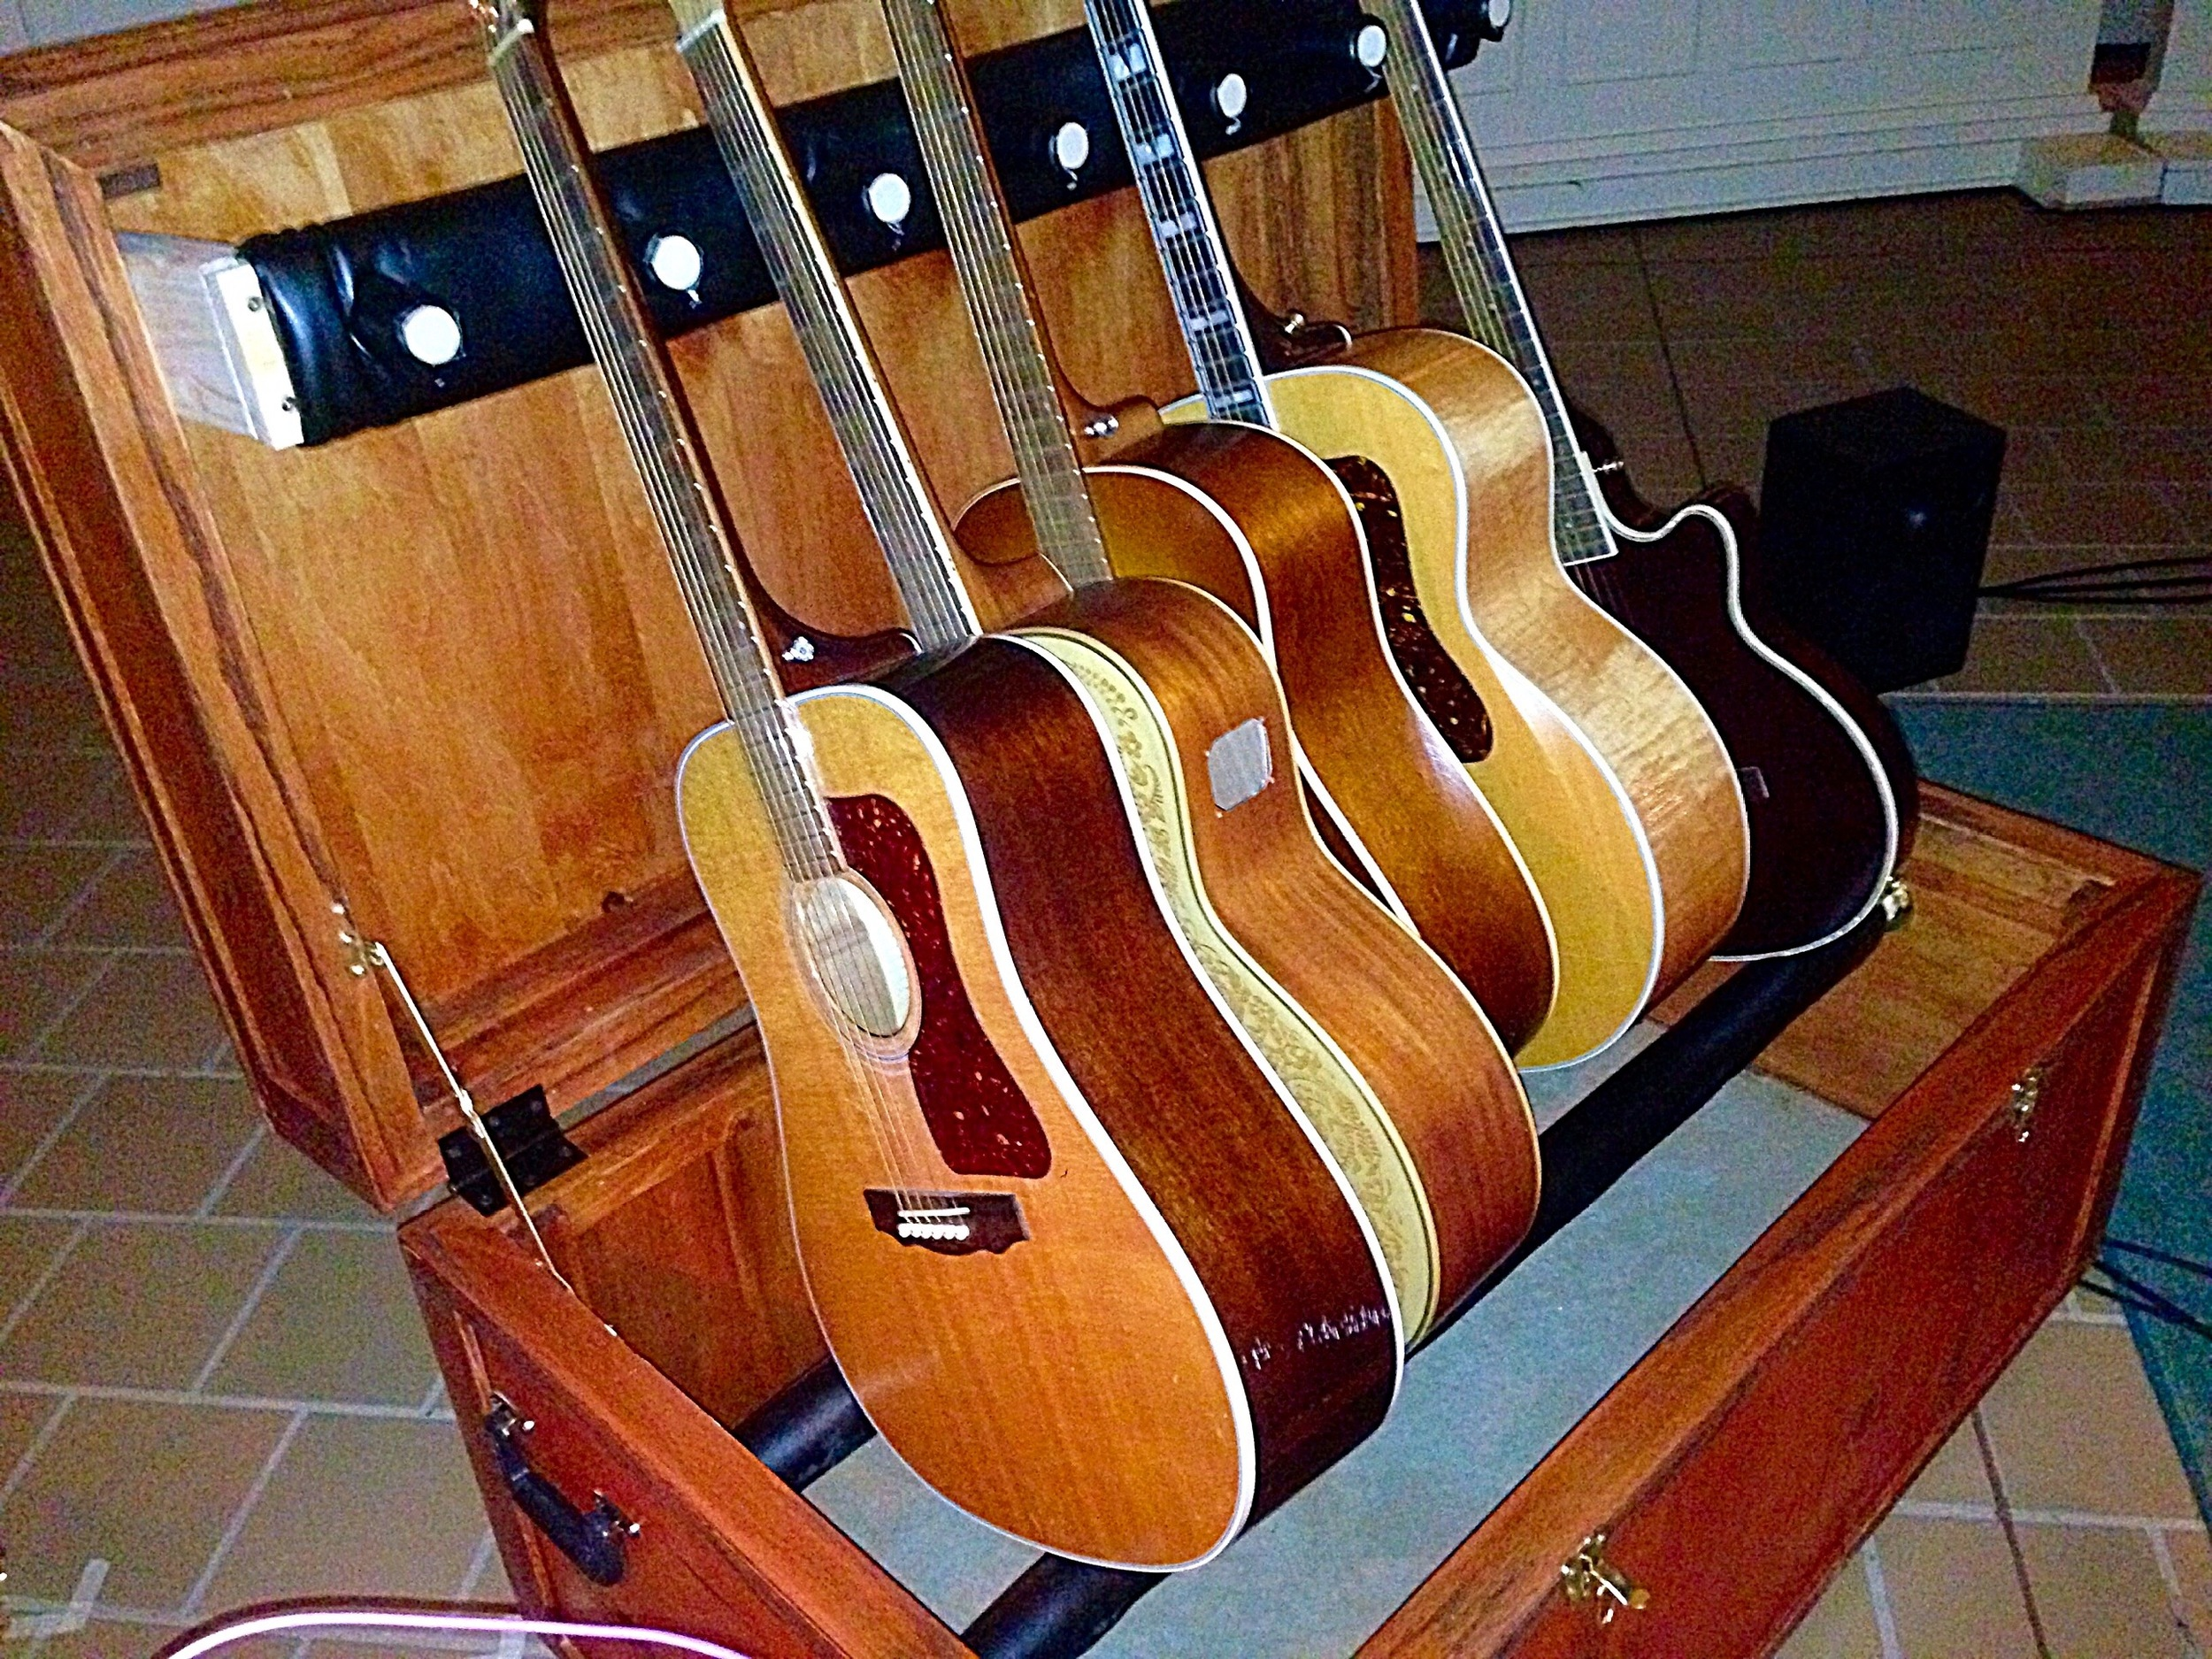 Billy Mclaughlin's Guitar Stand